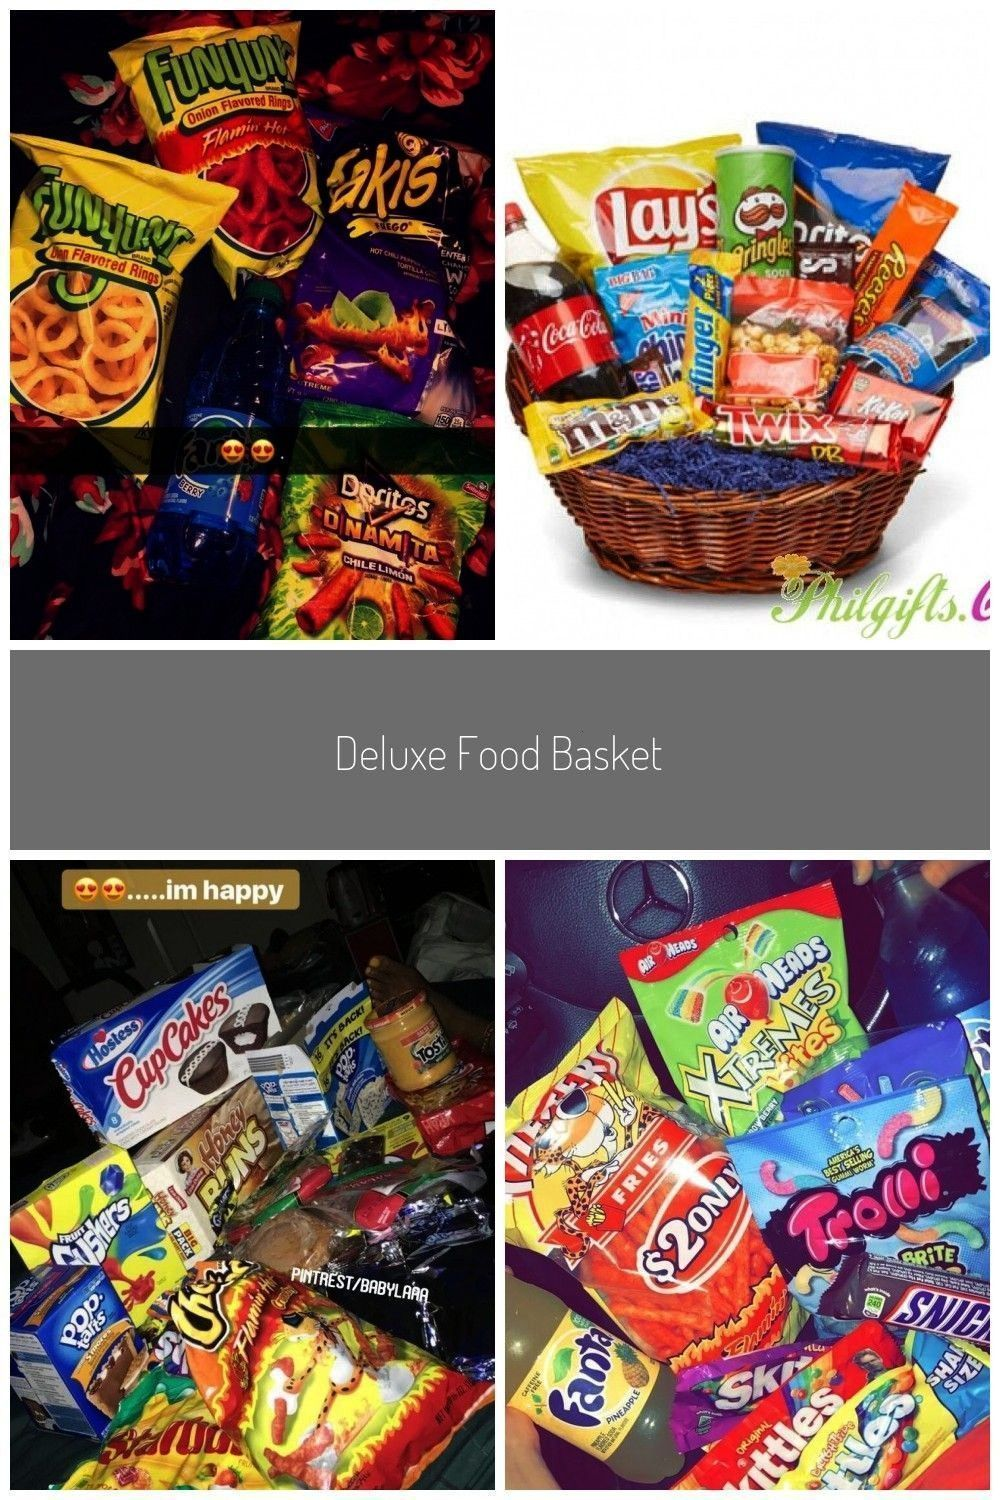 Snack Food Near Me until Good Snack Foods For Diabetics  Junk Food Movie Night Snacks few Snack Foods High In Calcium Chinese Snack Food Ideas food snacksIndian Snack Foo...